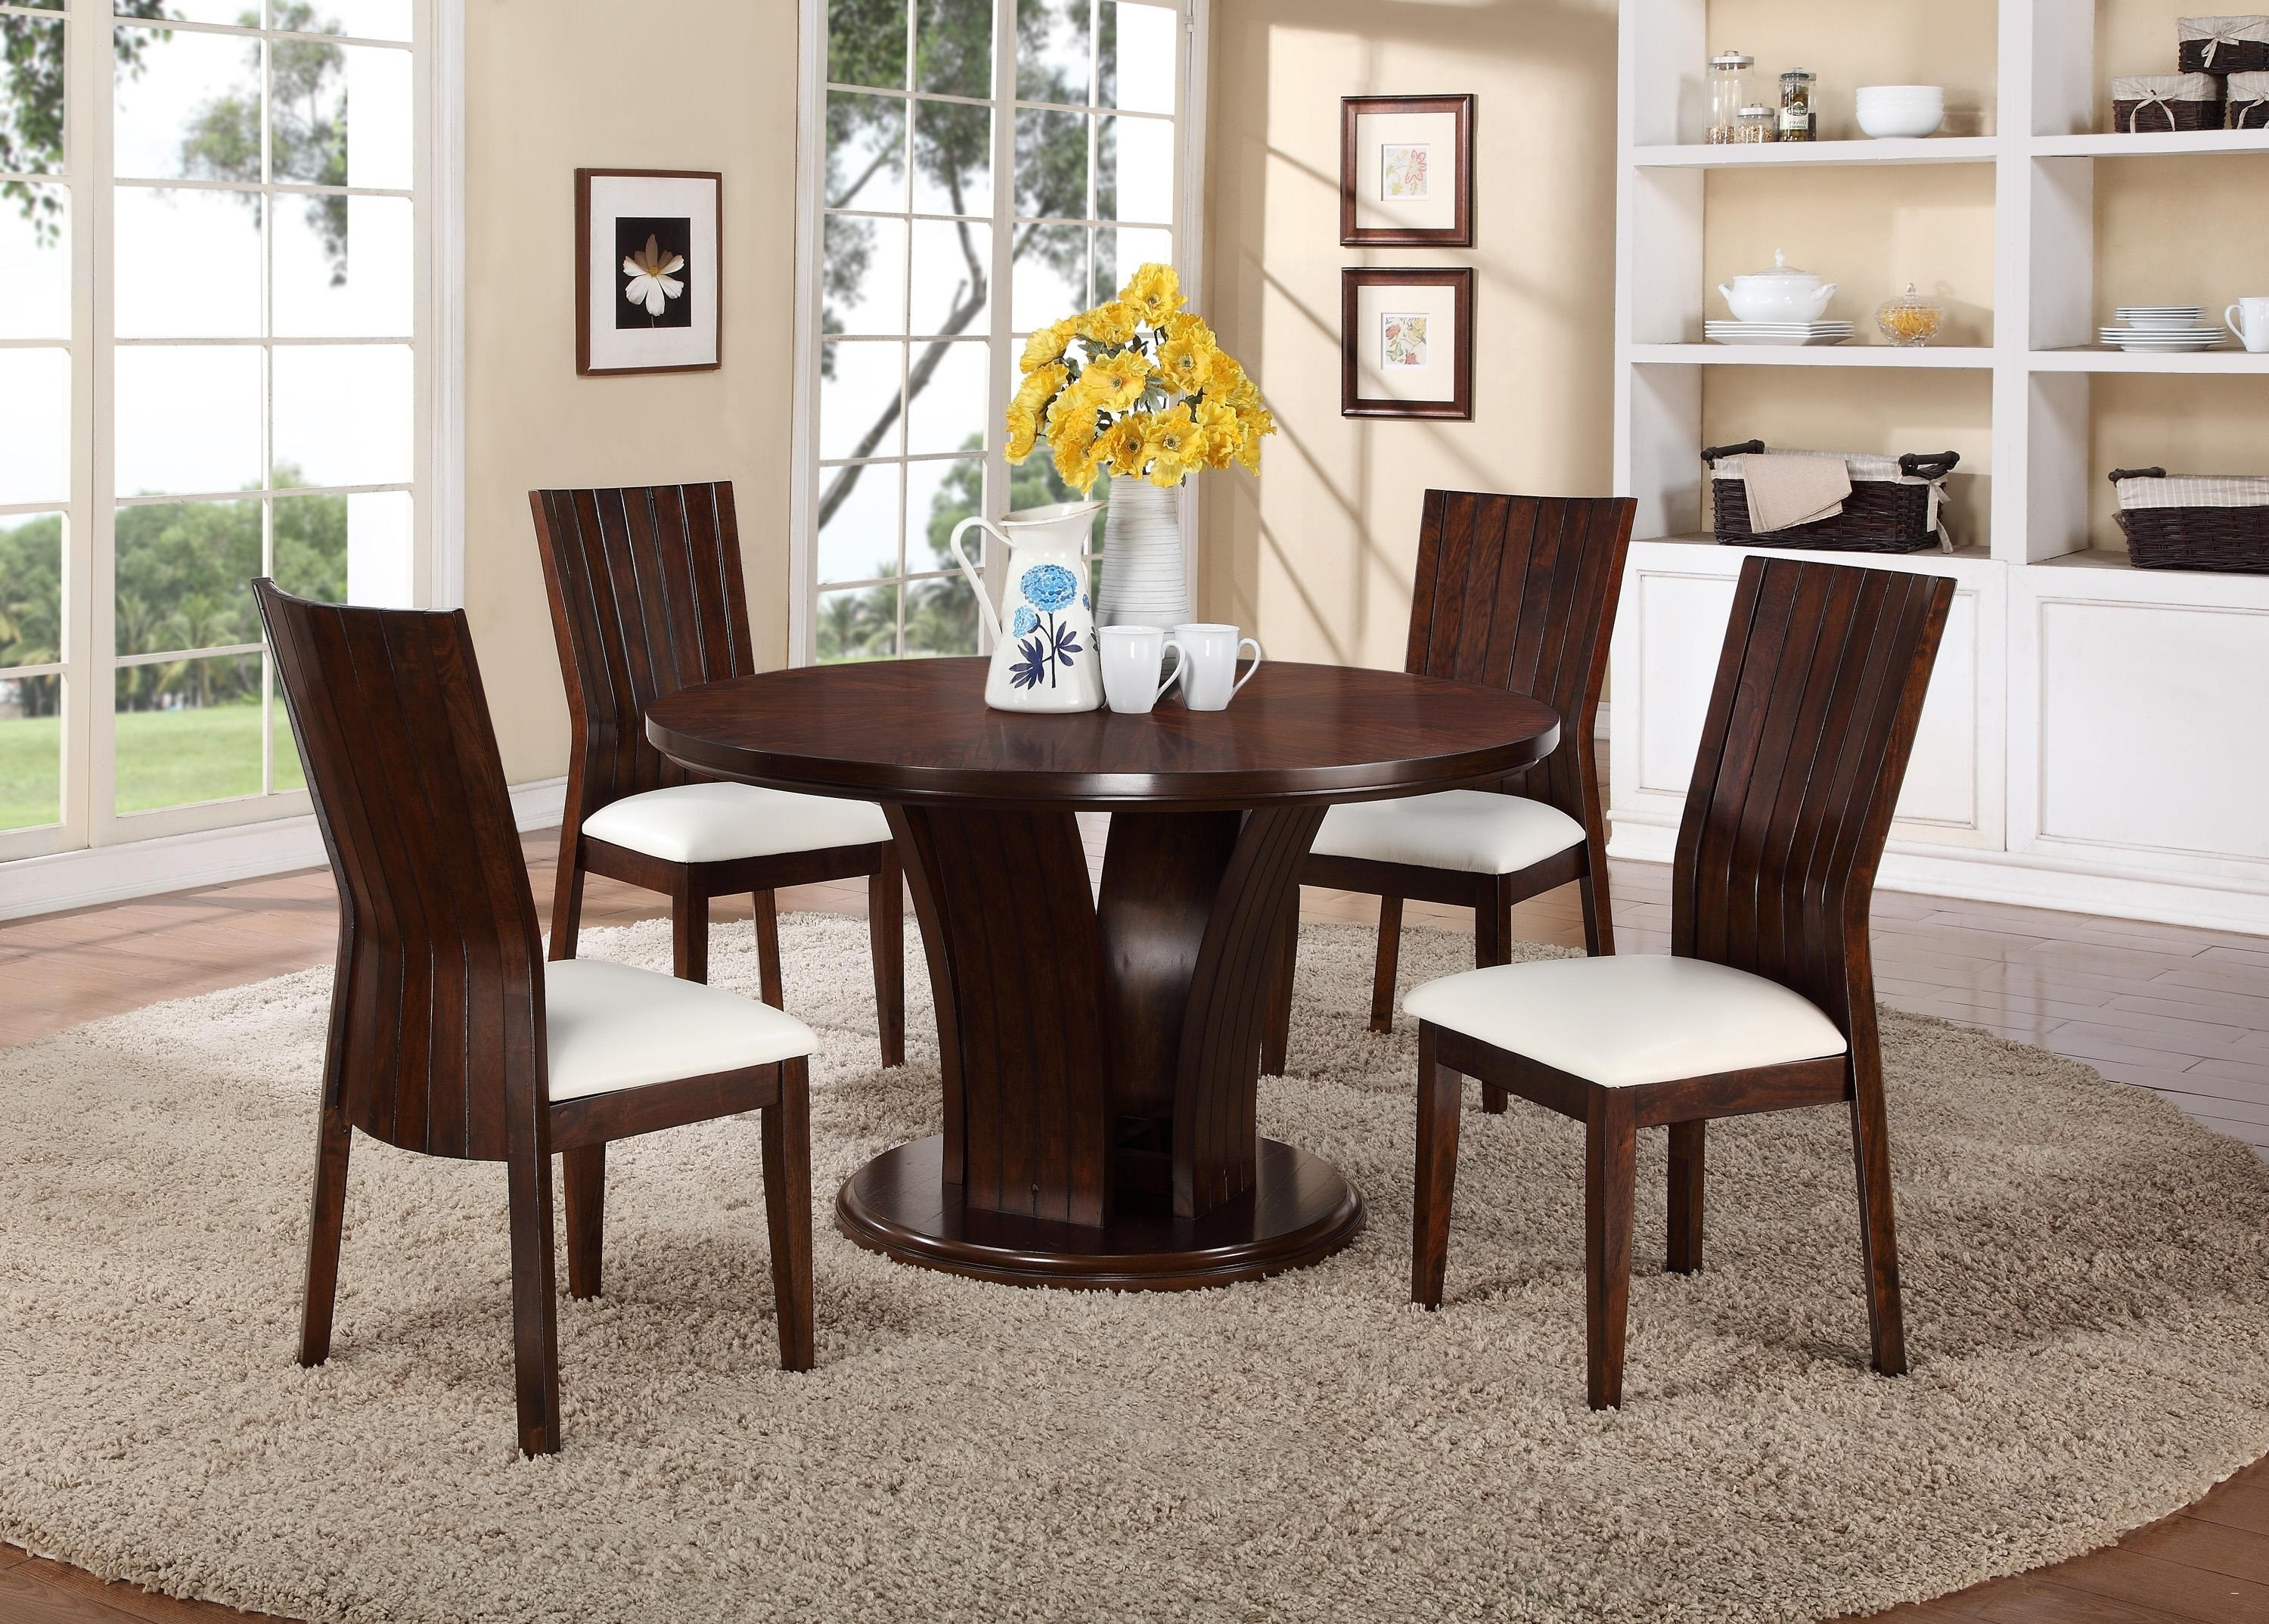 Ashton Round Pedestal Dining Table Elegant Kitchen Dining Area Throughout Most Popular Jaxon Grey 5 Piece Round Extension Dining Sets With Wood Chairs (View 2 of 25)